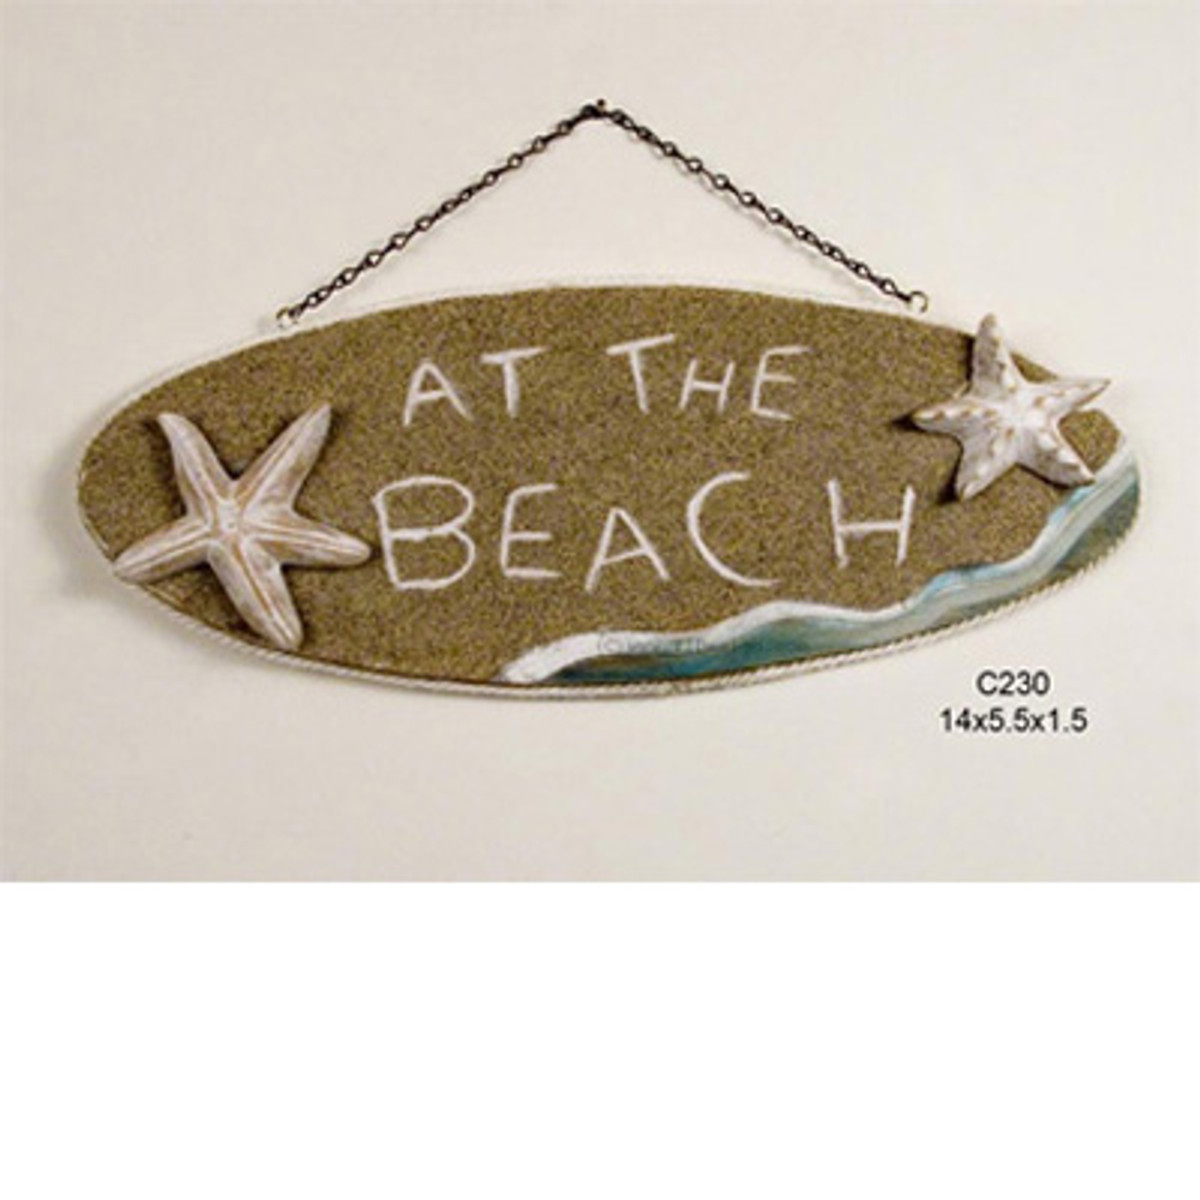 At The Beach sign.